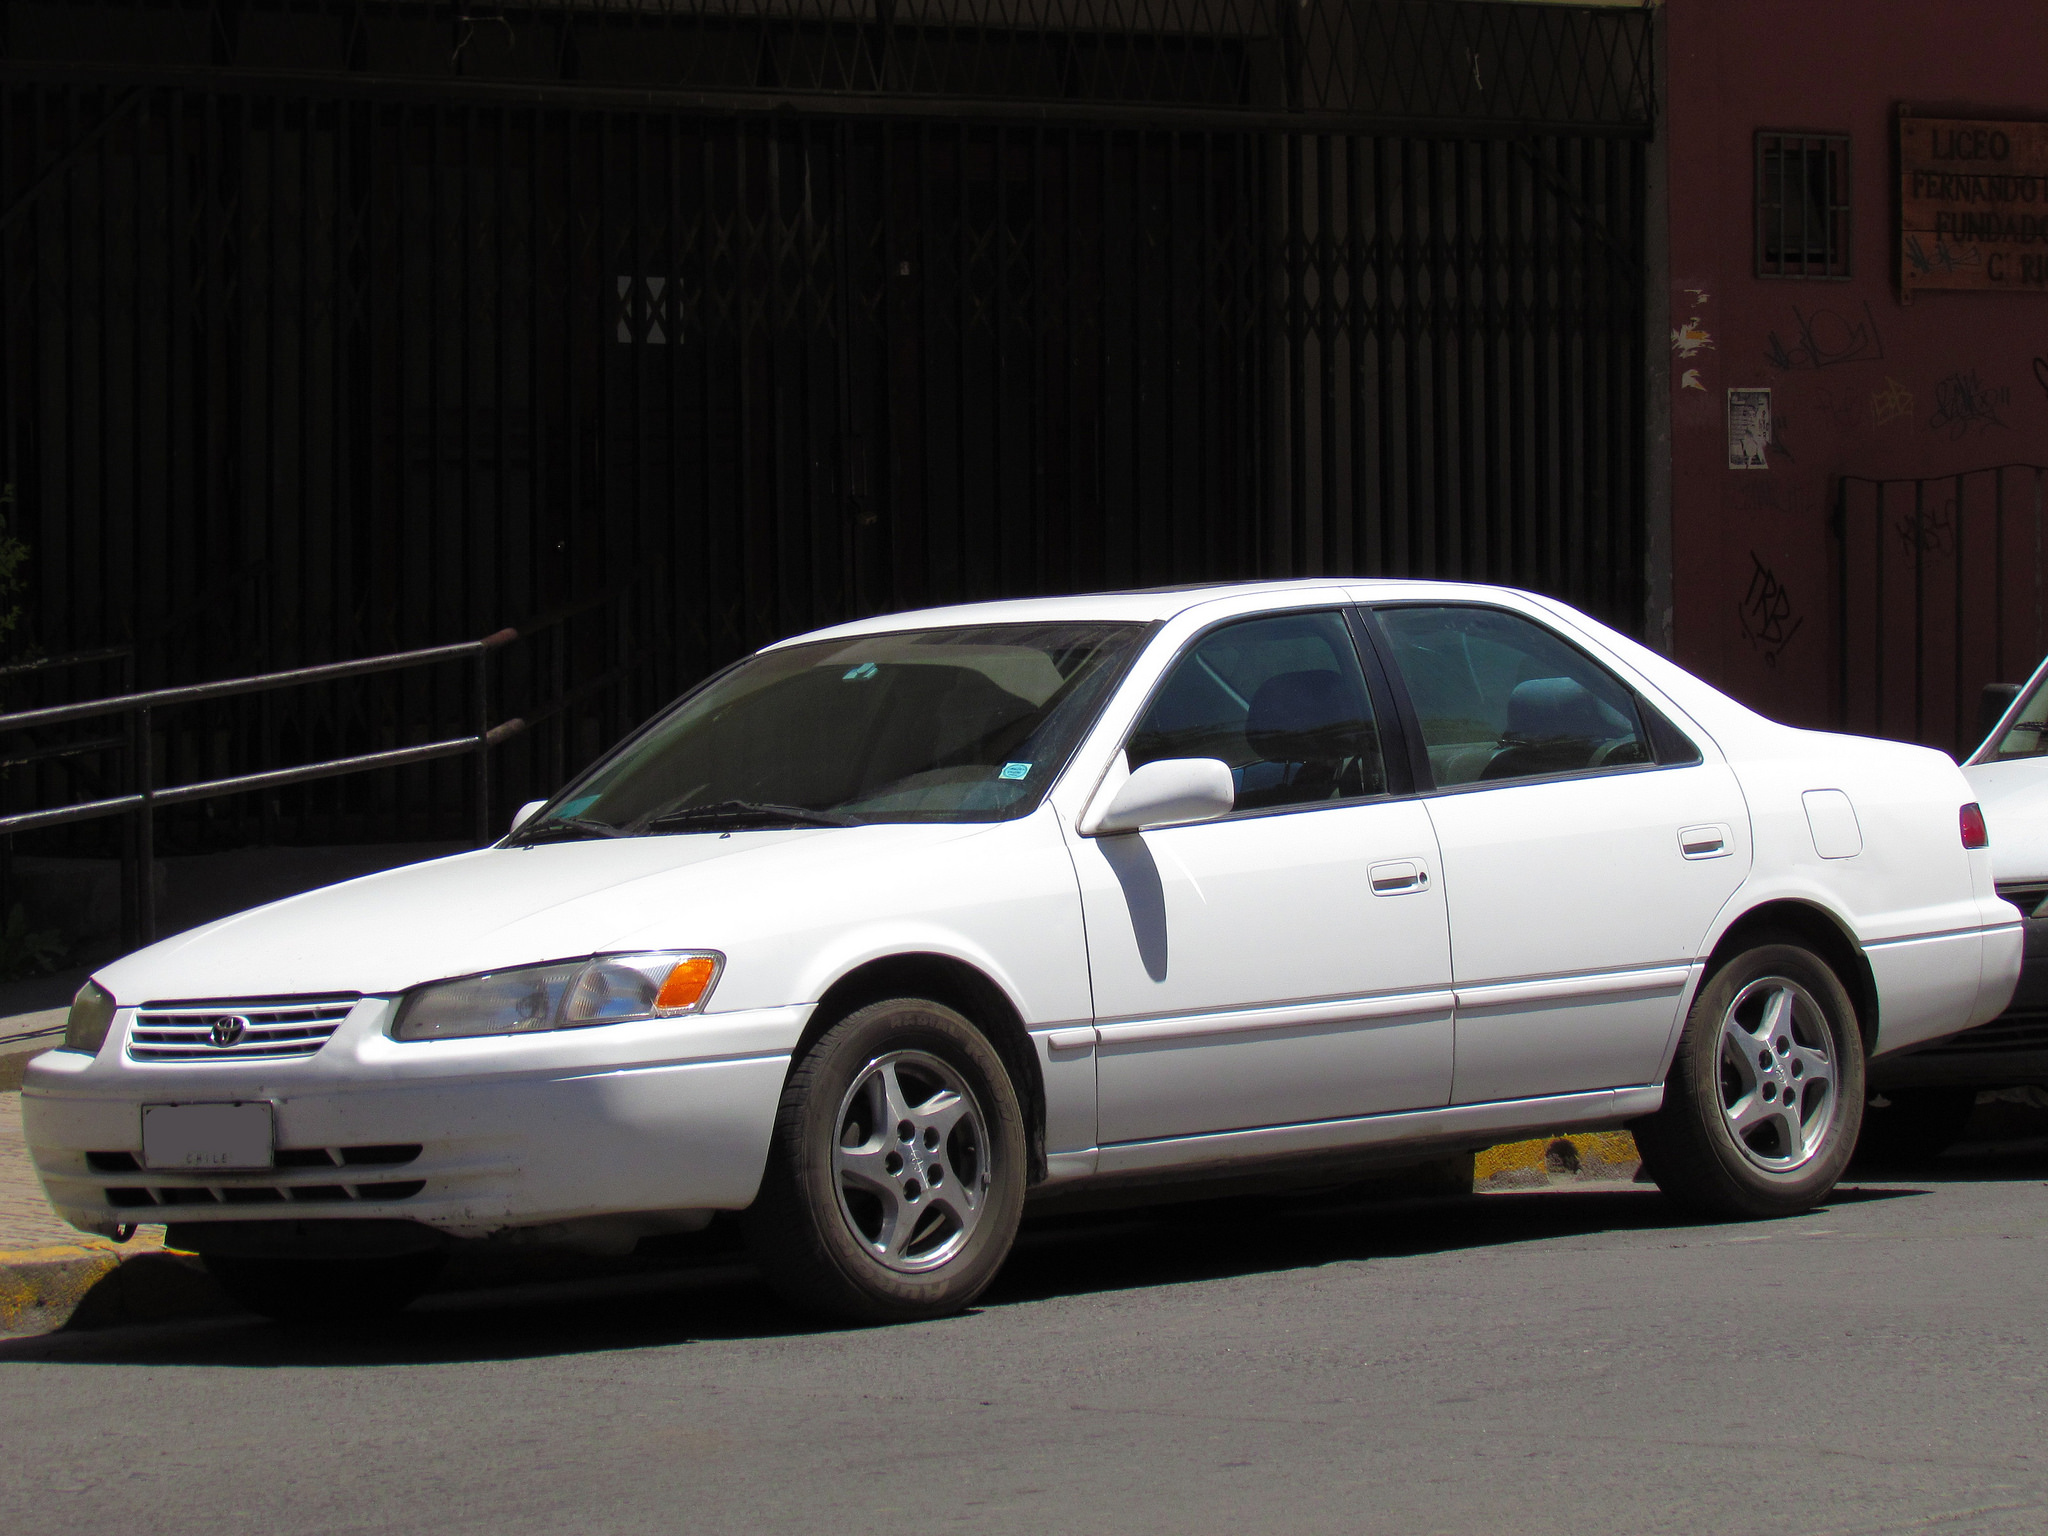 The Most Iconic Car of the 1990s: Toyota Camry